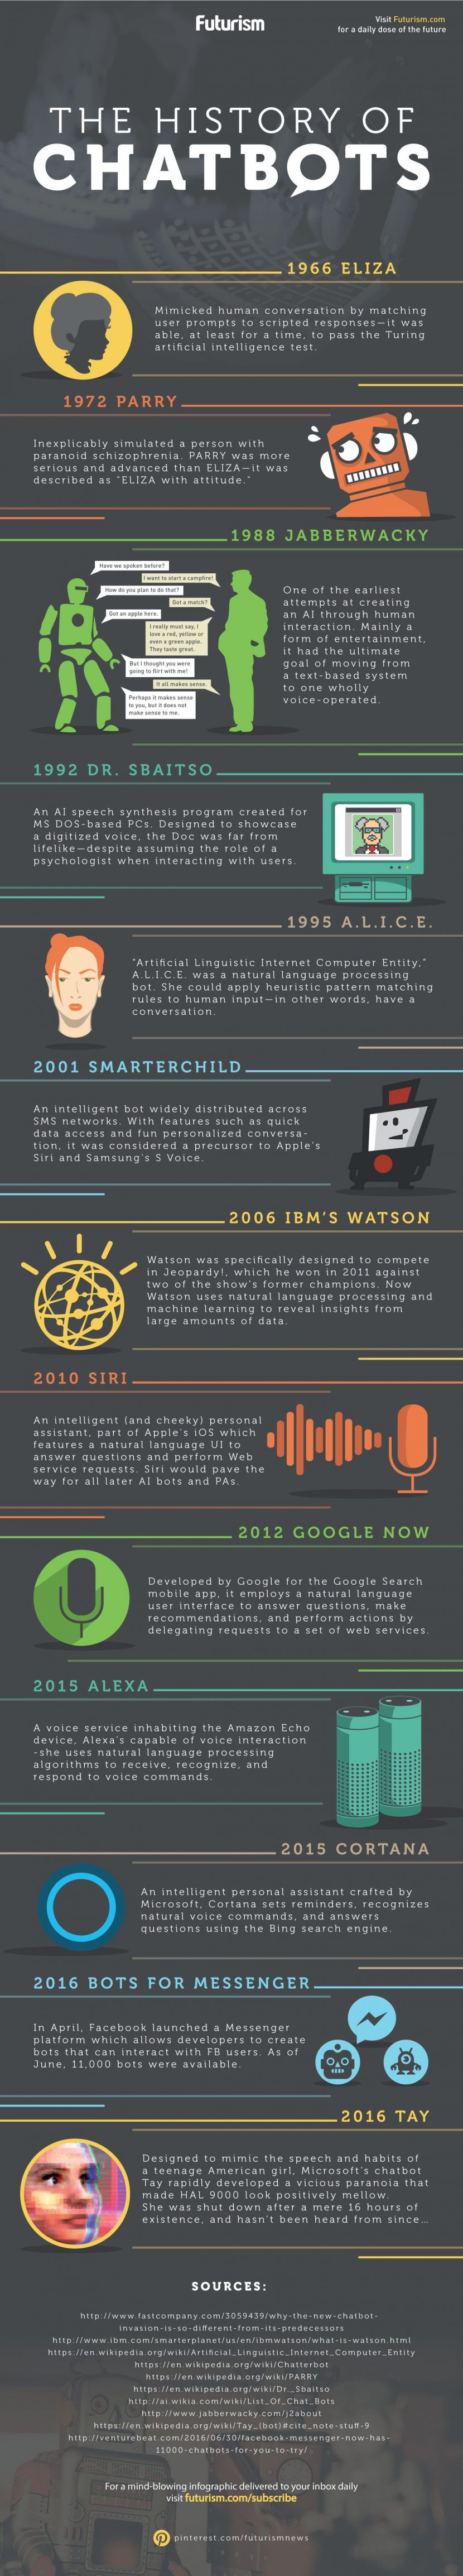 The History of Chatbots infographic by Futurism.com